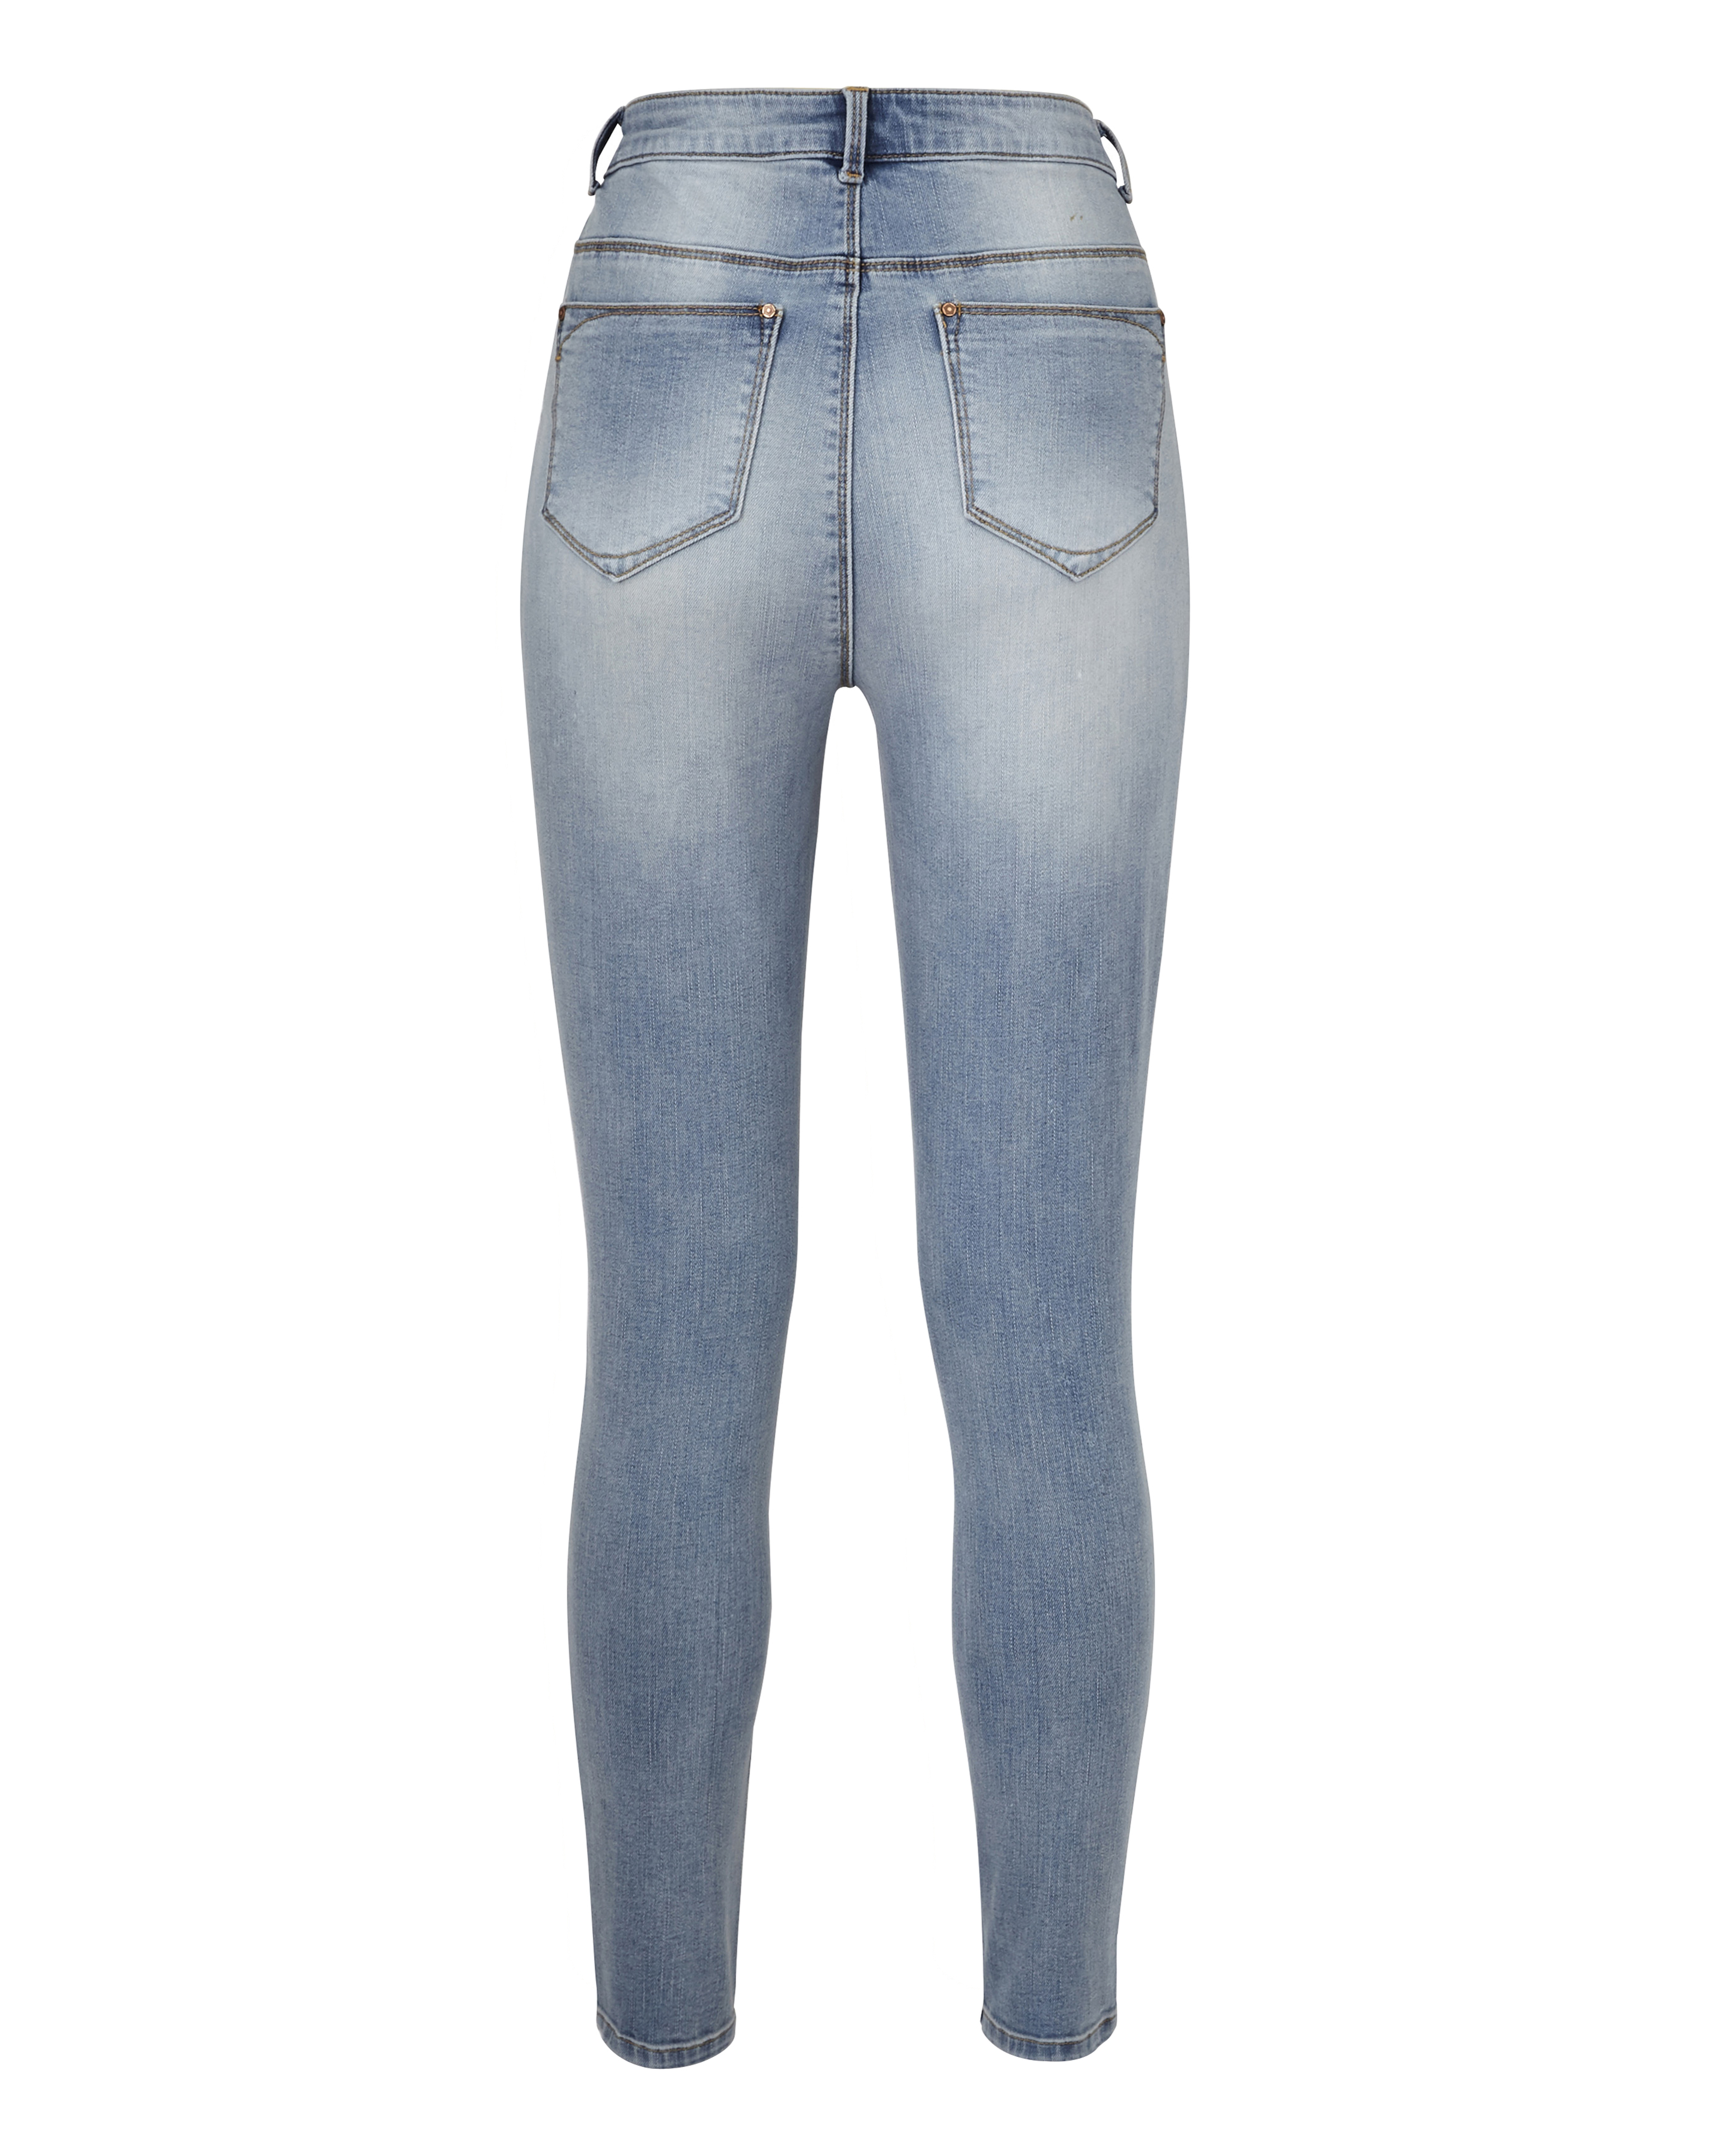 Womens-Chloe-High-Waist-Distressed-Skinny-Jeans-Simply-Be thumbnail 5